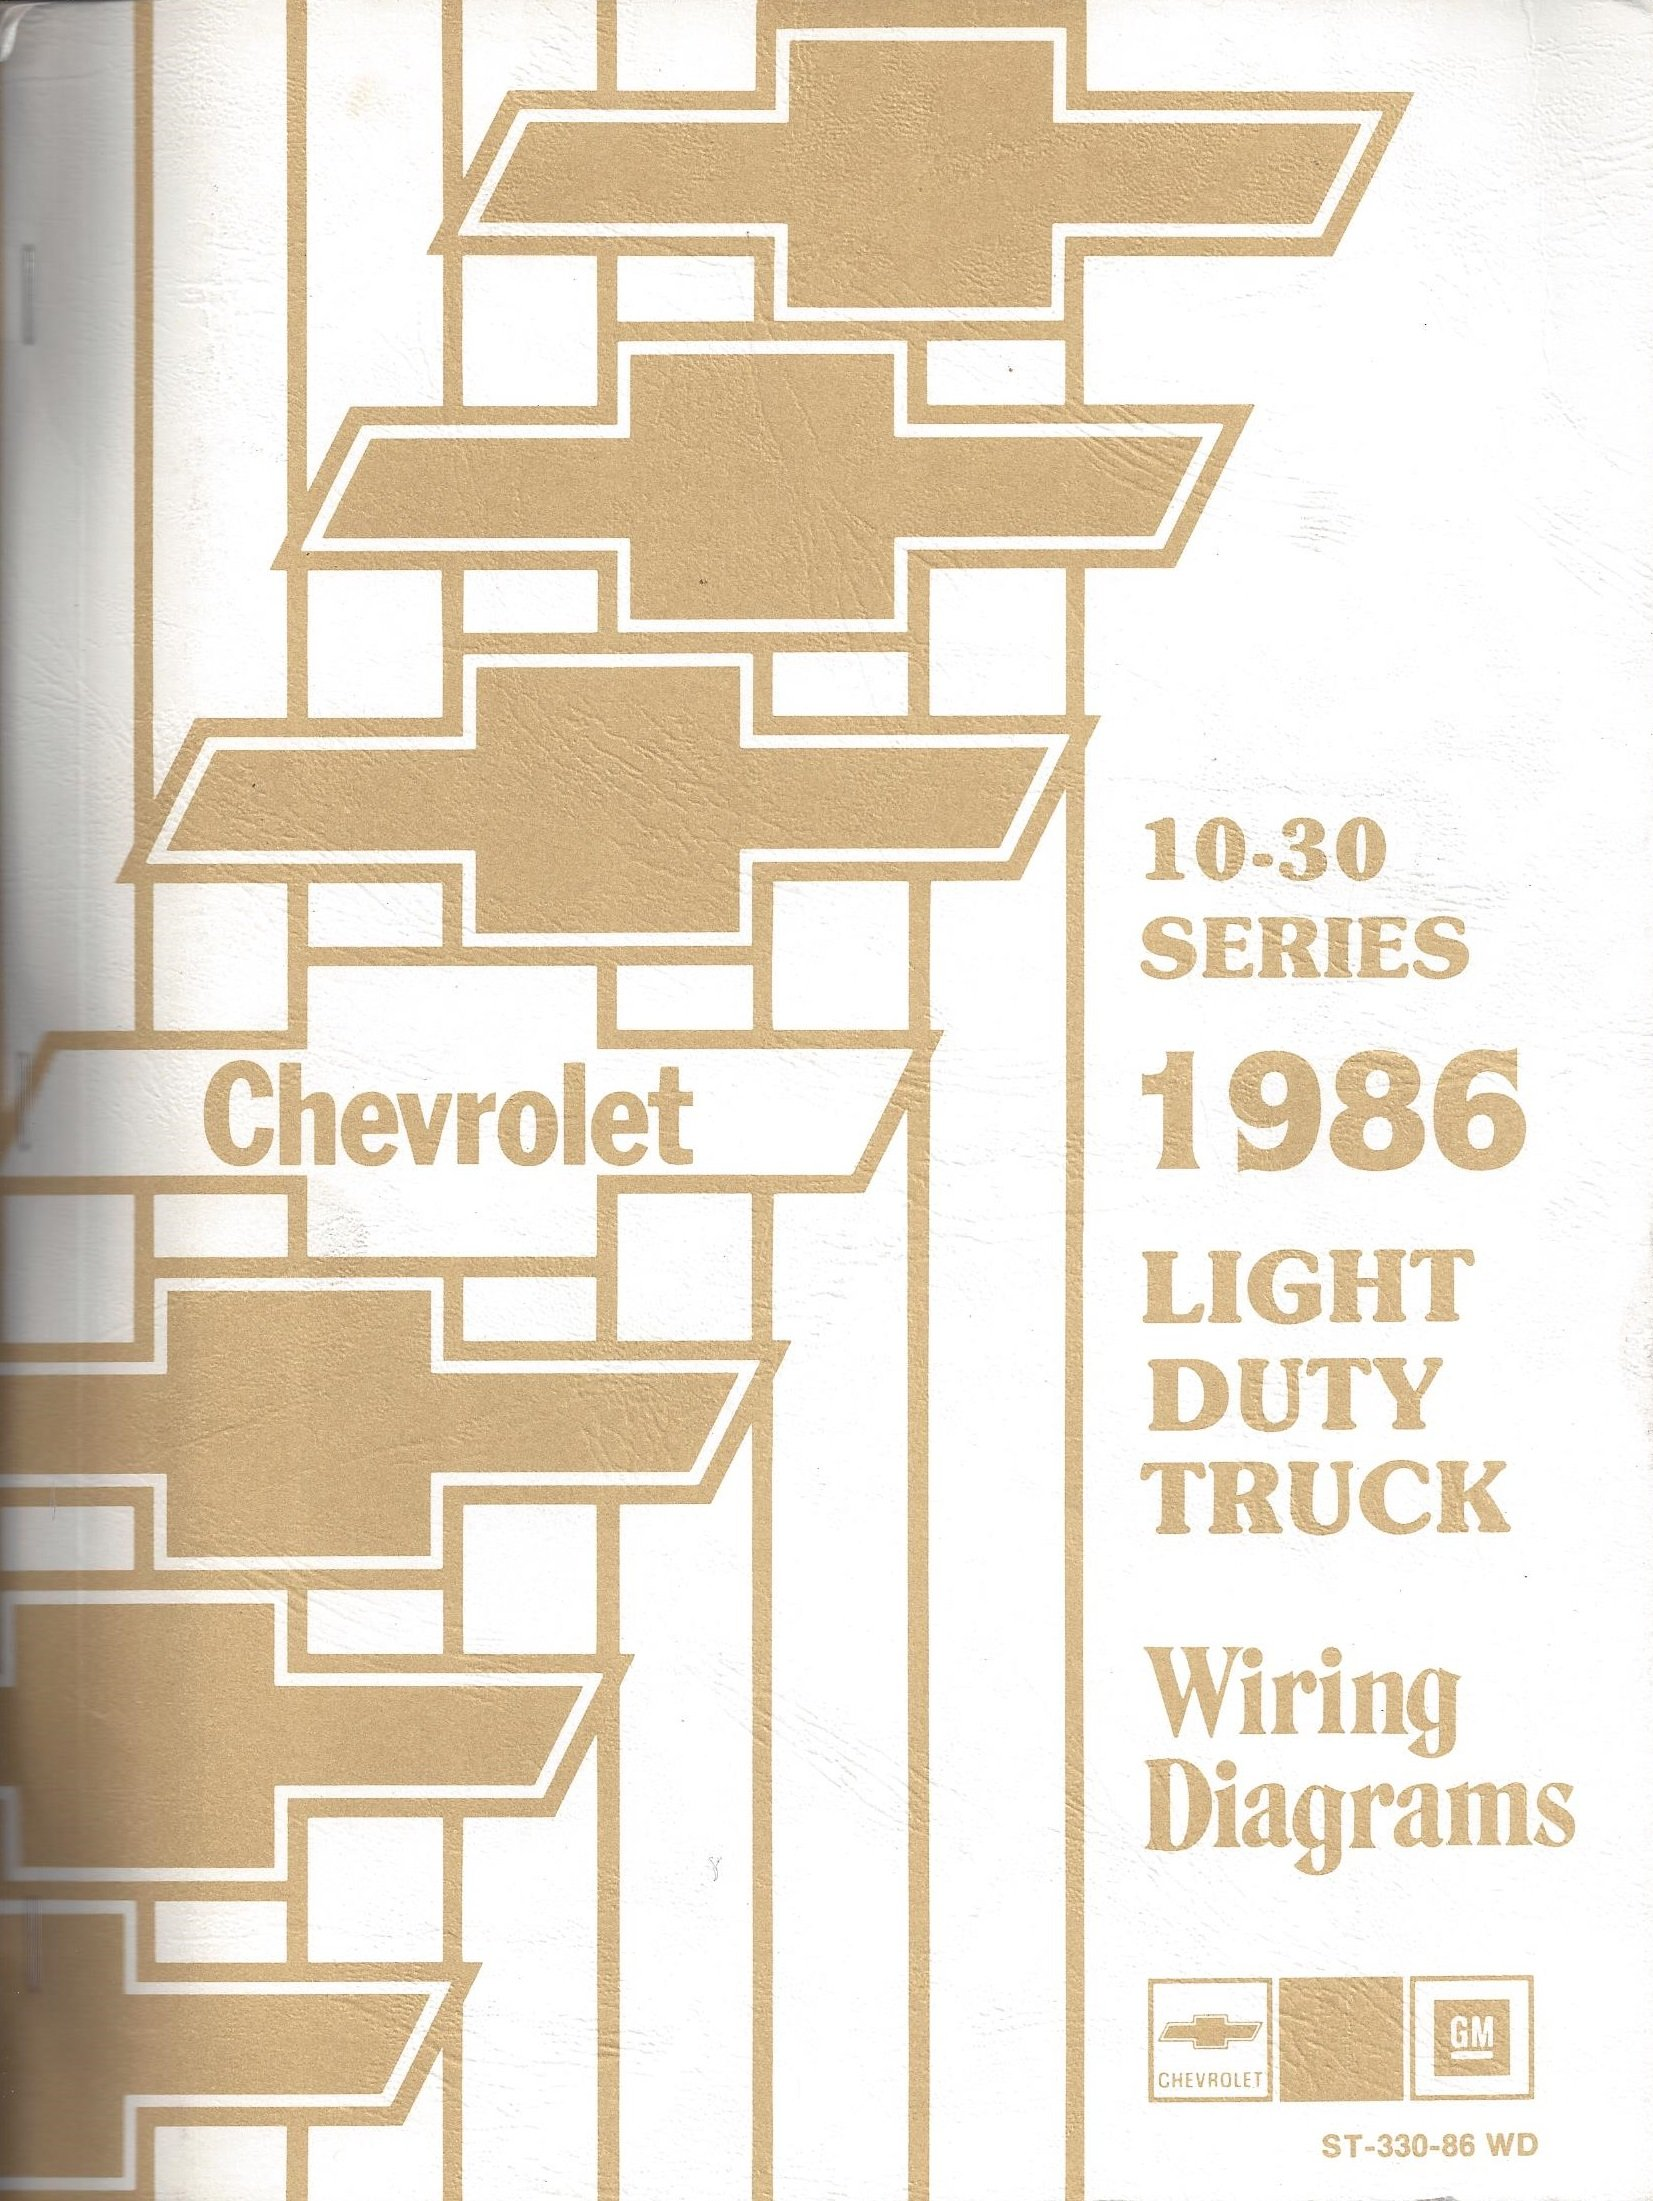 1986 chevrolet light duty truck wiring diagrams (10 30  wiring diagrams for light duty trucks #3